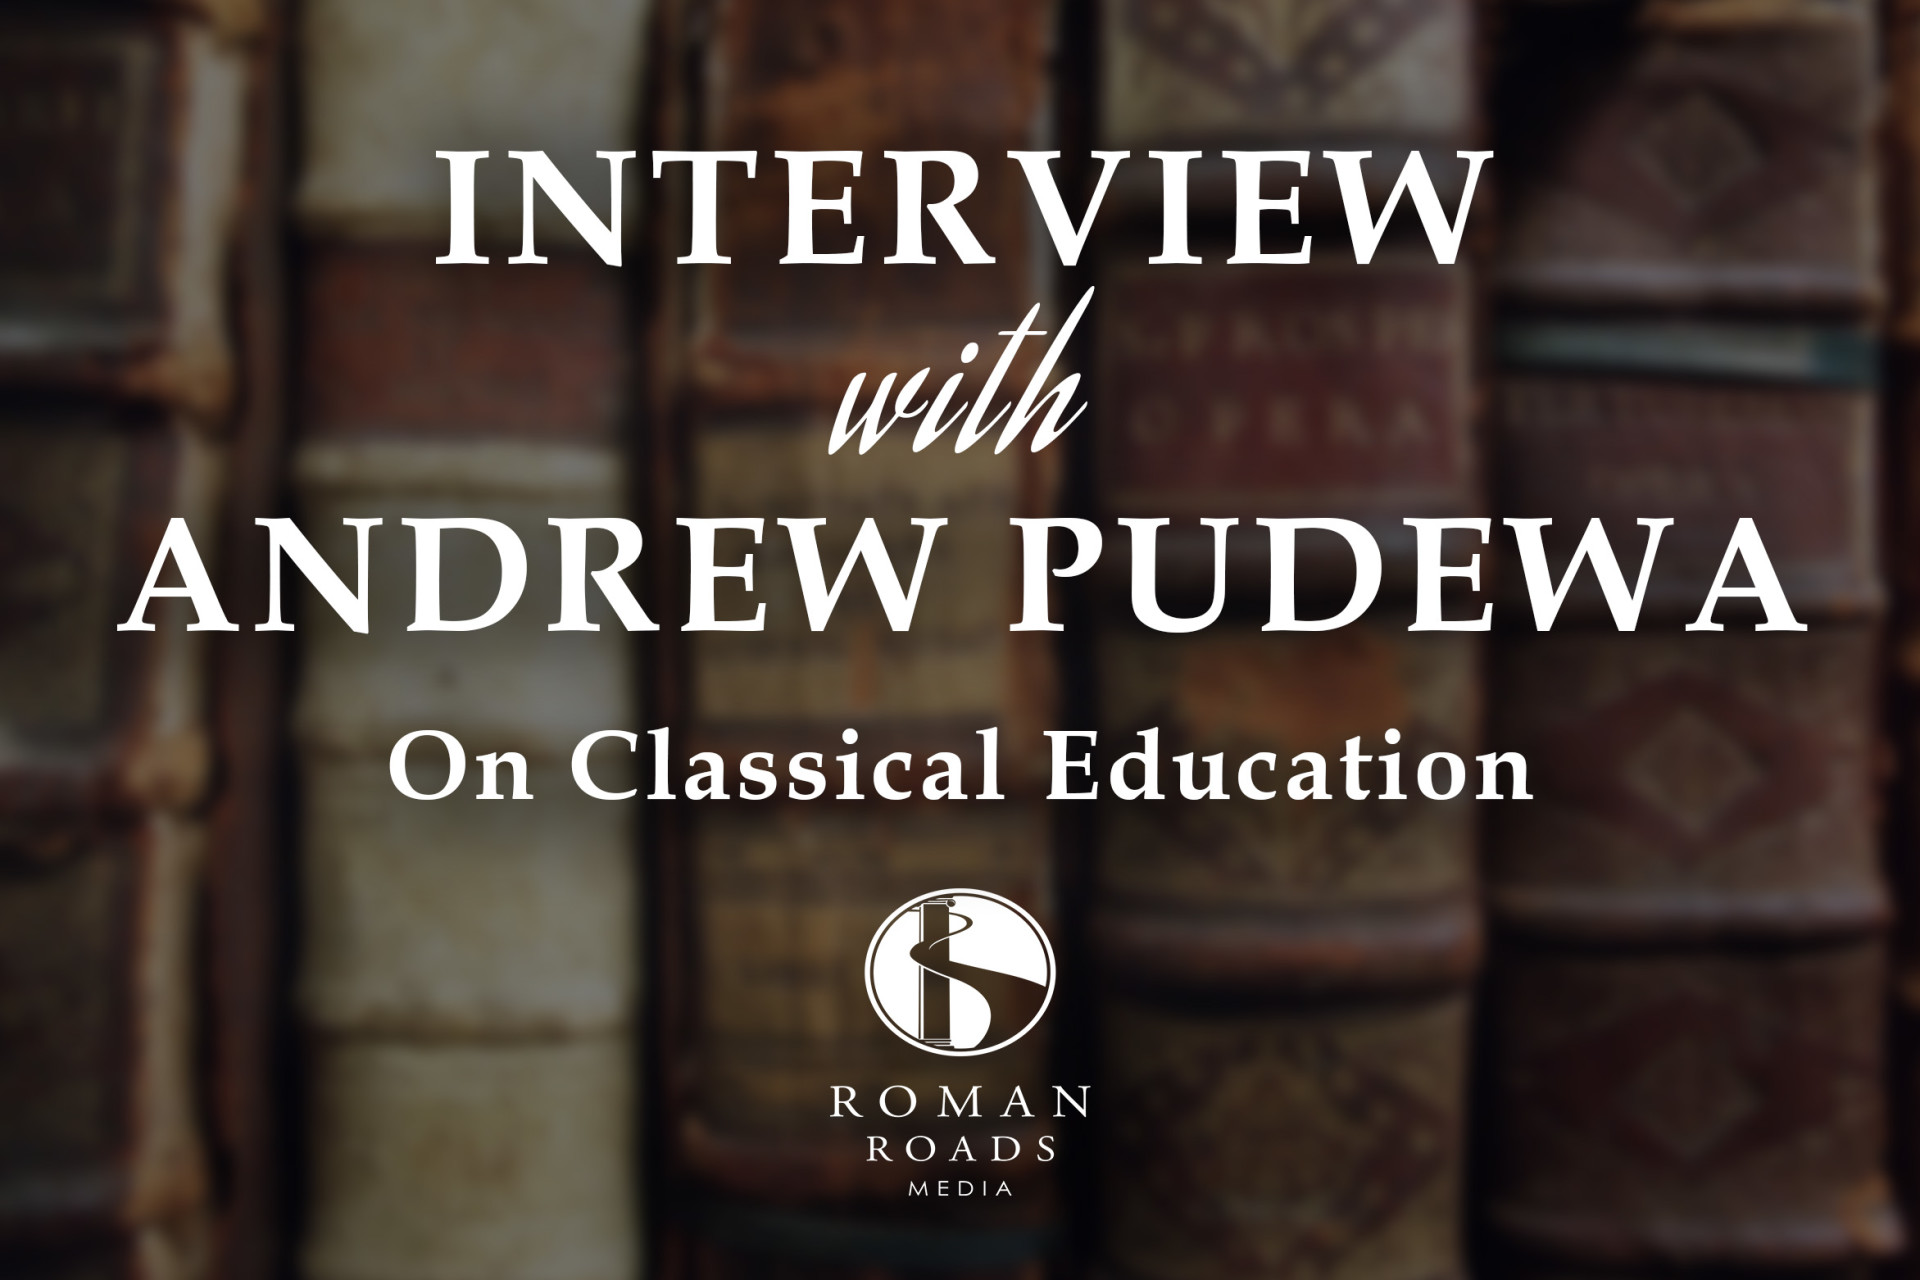 Interview with Andrew Pudewa on Classical Education